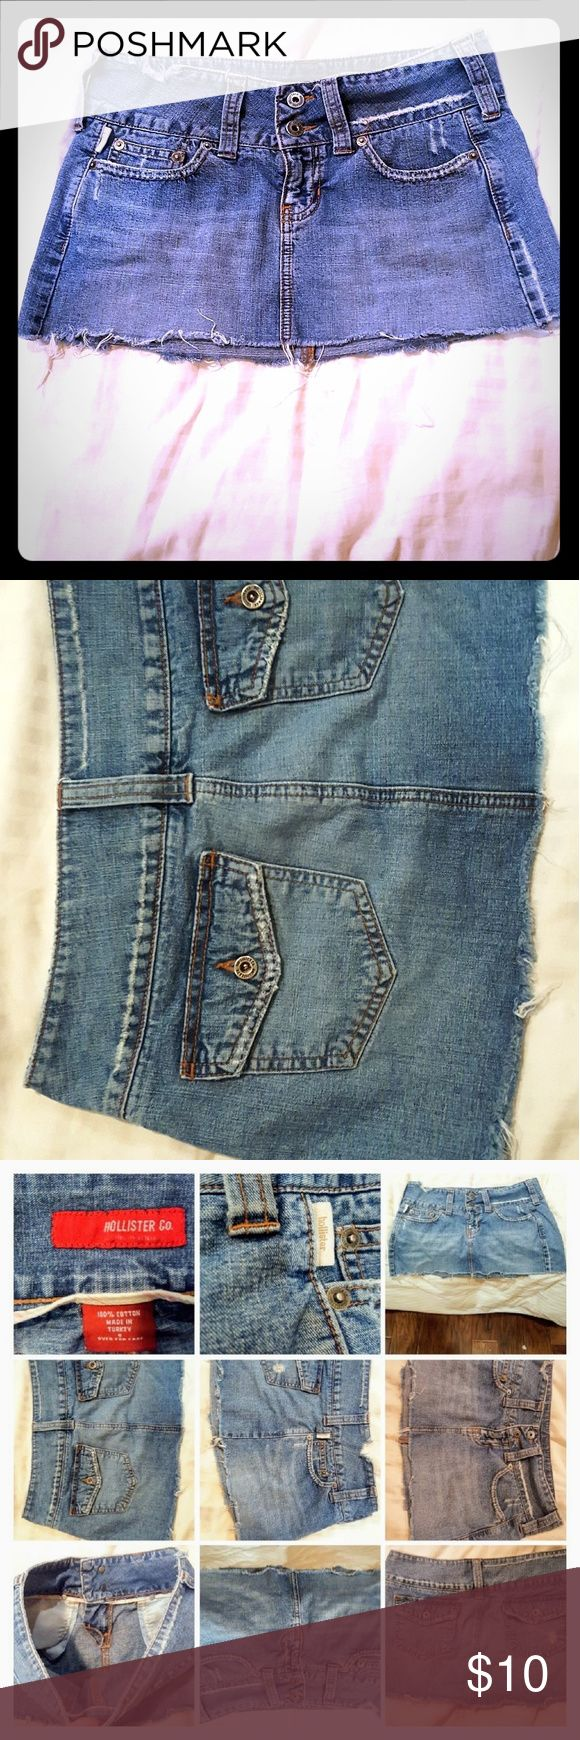 Cute butt, size 3*distressed Hollister skirt! Flattering, trendy distressed look. Super cute! Well made by Hollister. Size 3. 100% cotton. Does have some stretch.  Looks really cute on the butt 😘 Versatile. Can wear with a sweater and boots for winter/fall...very cute & styish look! 🤗 Hollister Skirts Mini